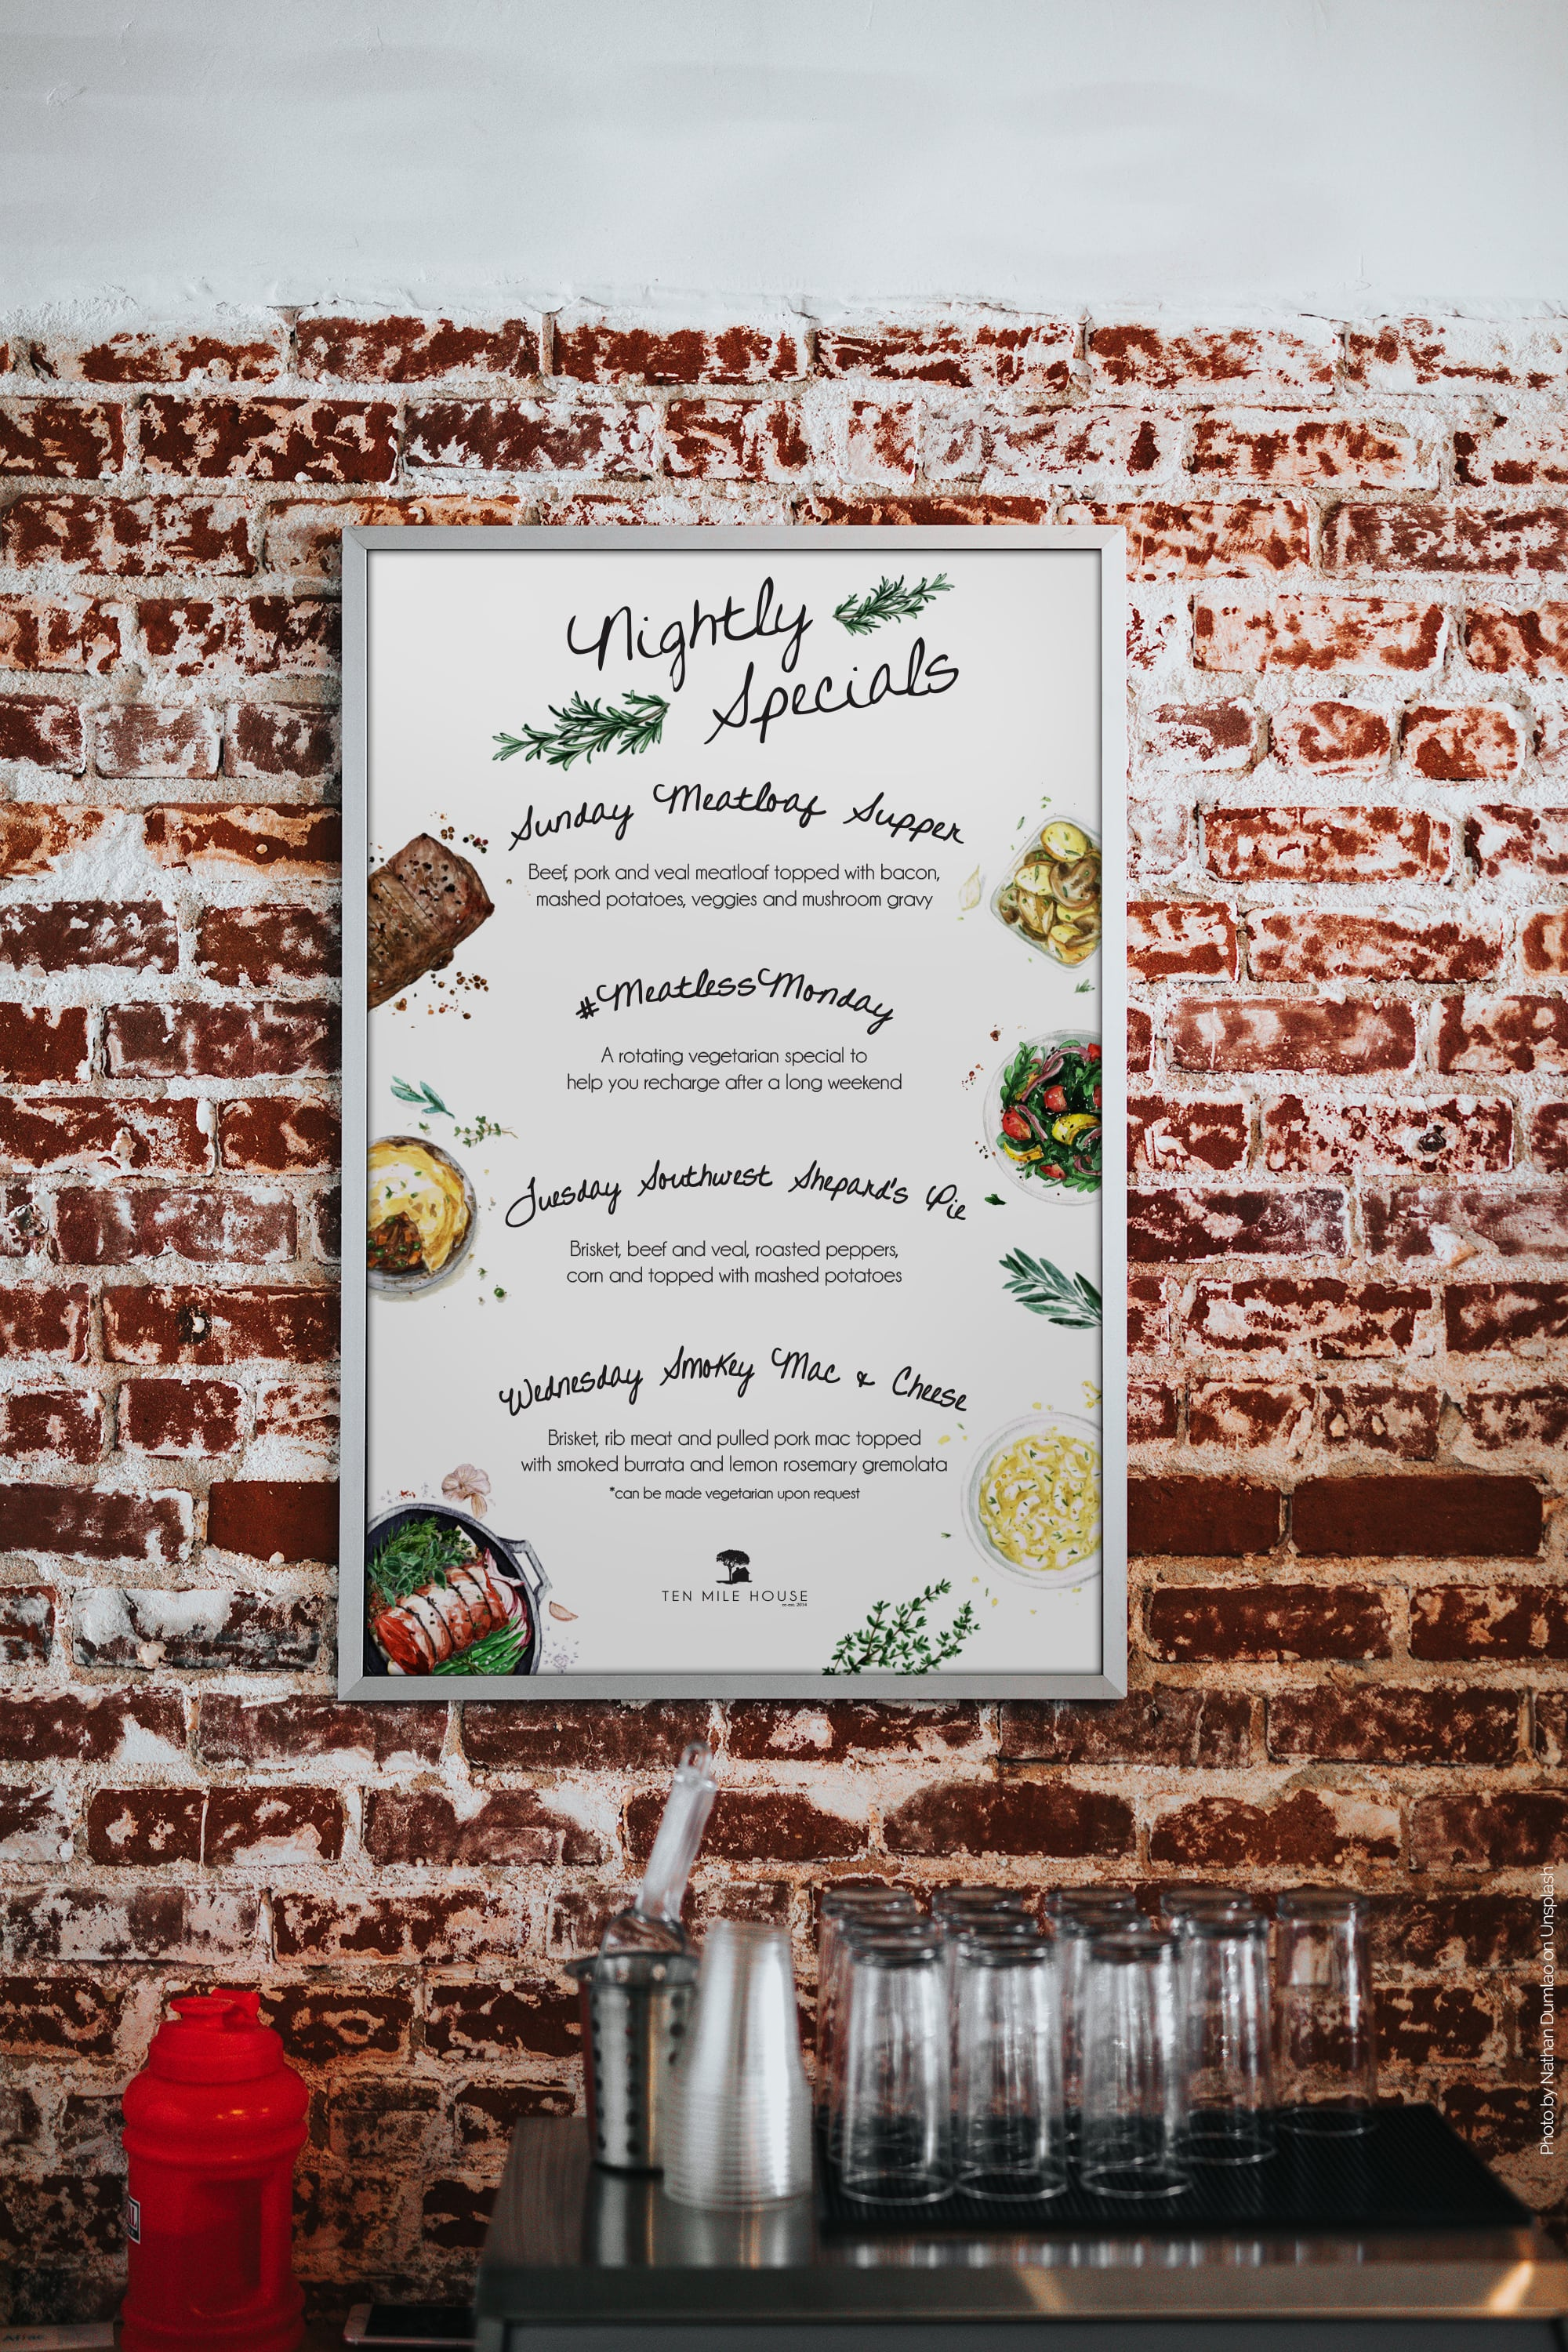 The Adventure Agency | Restaurant Promotional Poster Design Services